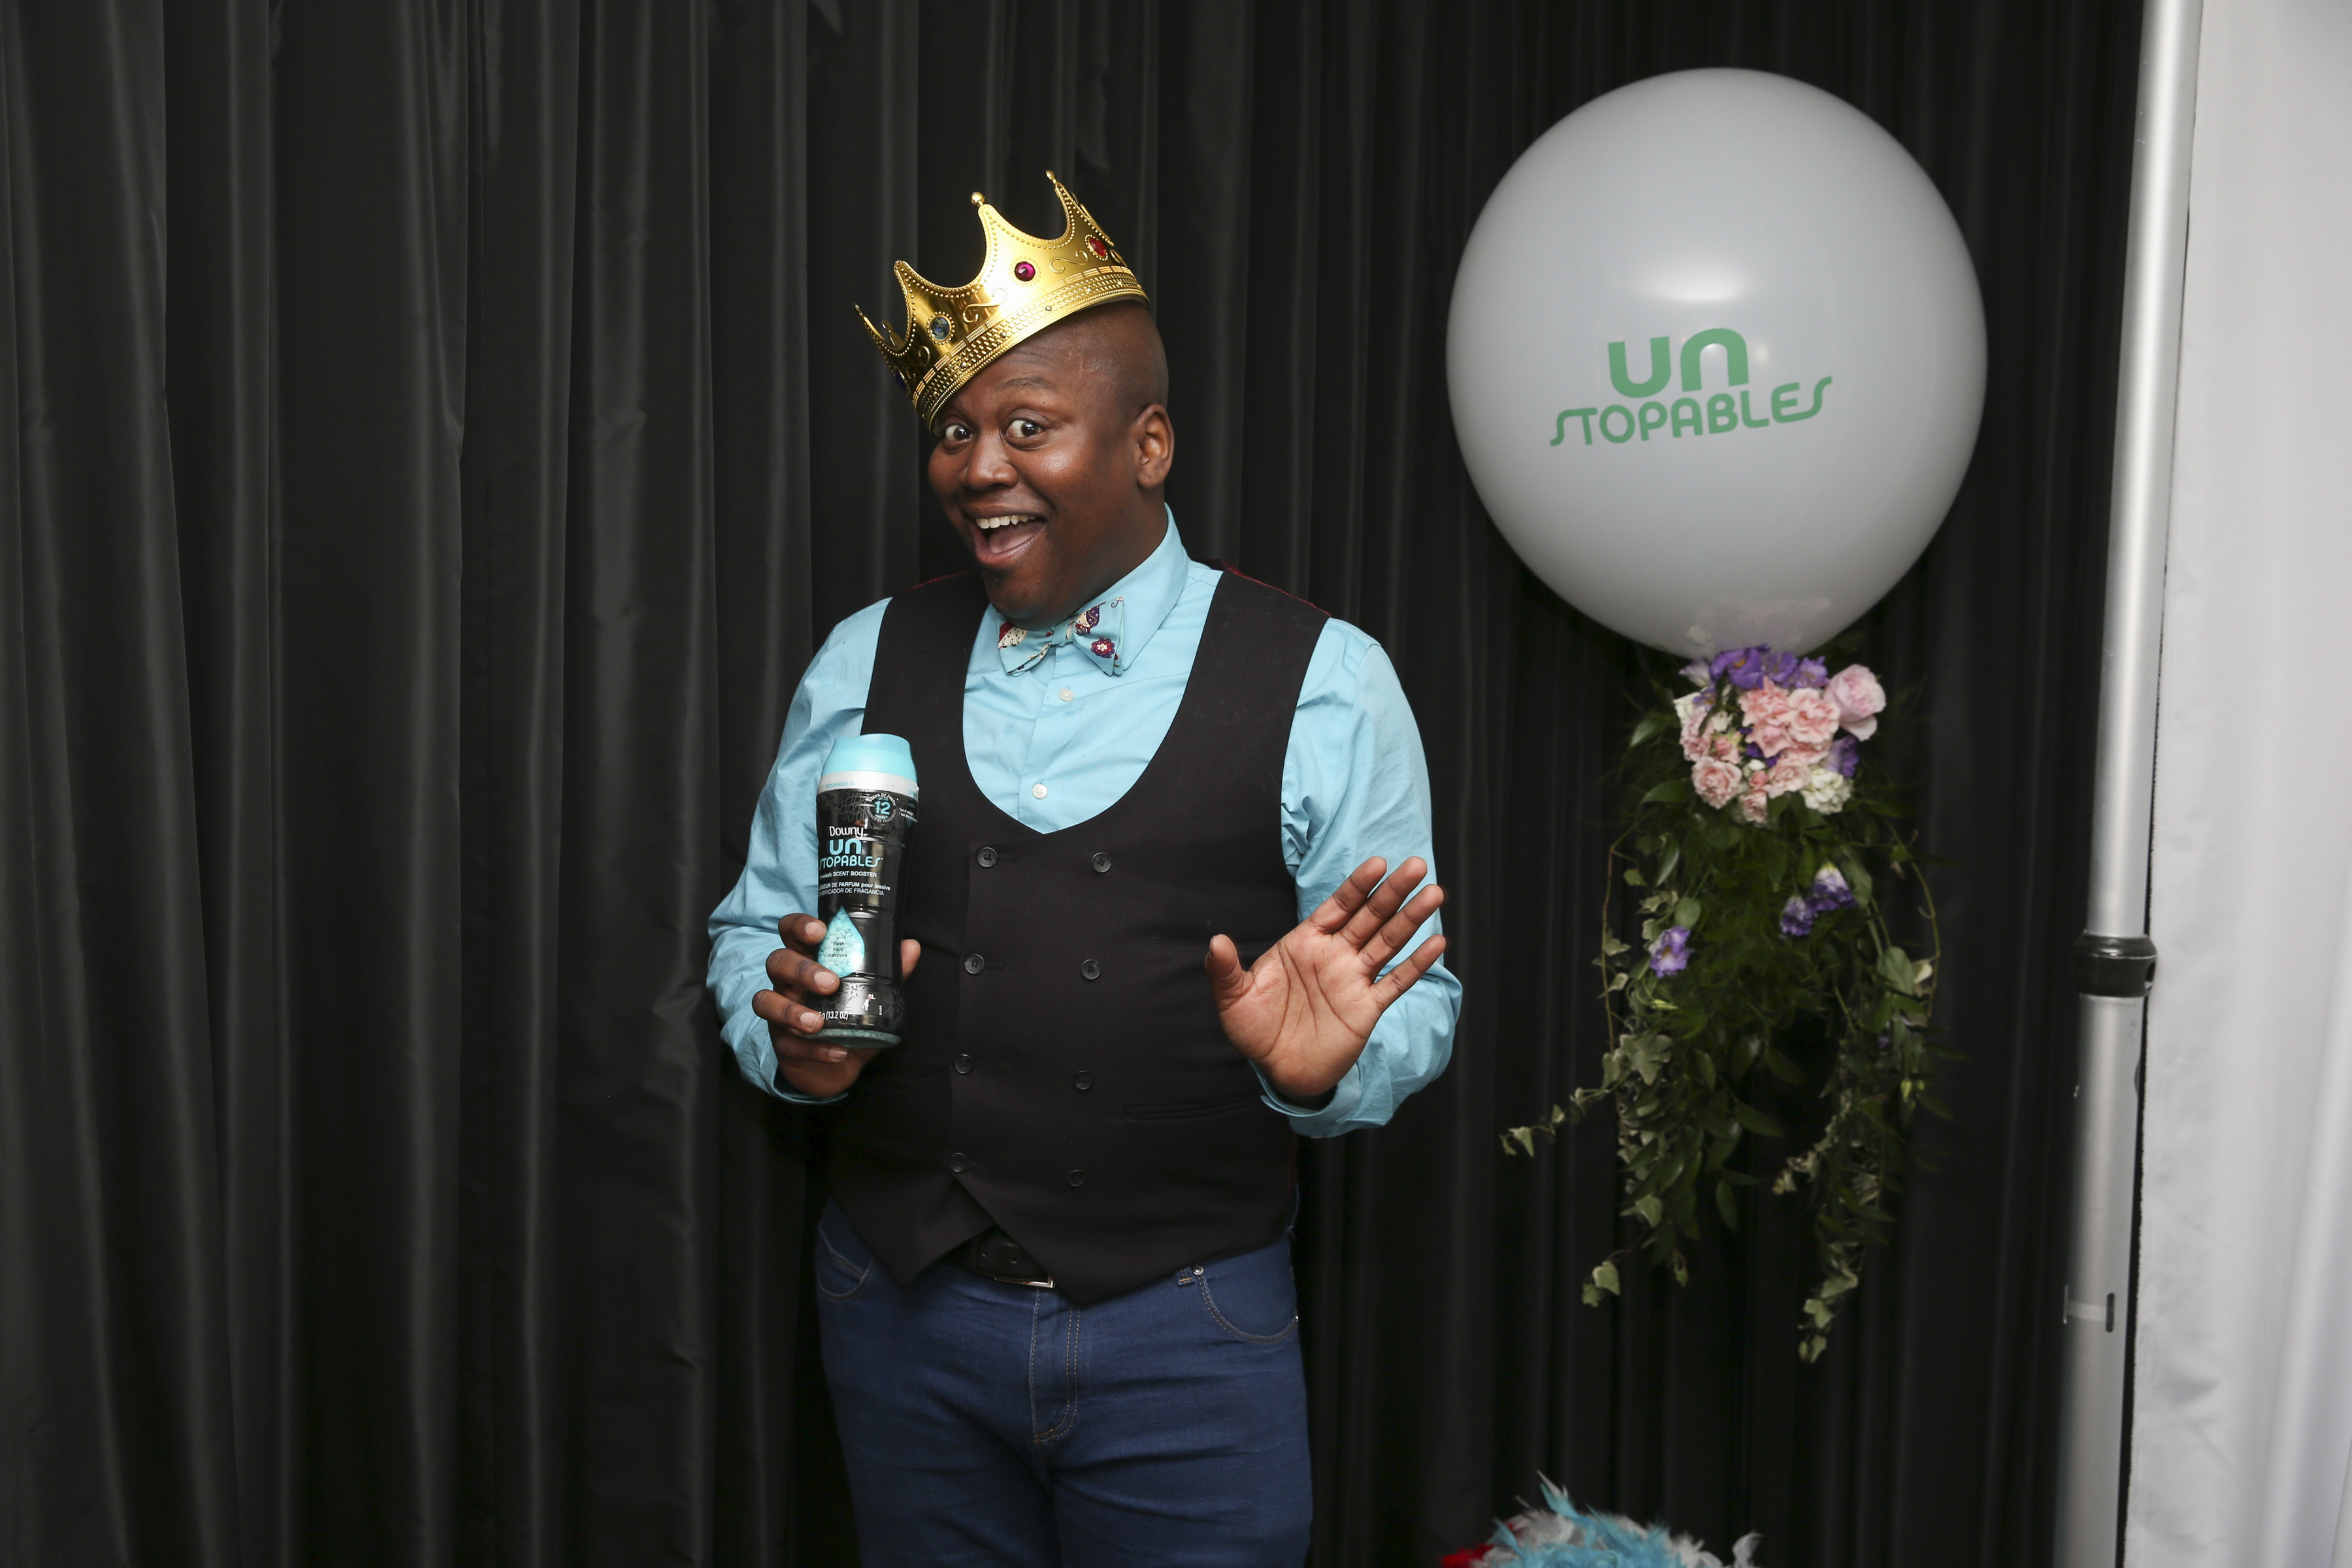 """Emmy-nominated actor Tituss Burgess shows off his secret to long-lasting freshness – Unstopables In-Wash Scent Boosters - at the Unstopables """"Fresh and Feisty Soiree."""" Burgess is the star of the brand's new """"Fresh Too Feisty To Quit"""" advertising campaign. For more information, visit the Unstopables social media channels and www.unstopables.com (Photo: Business Wire)"""